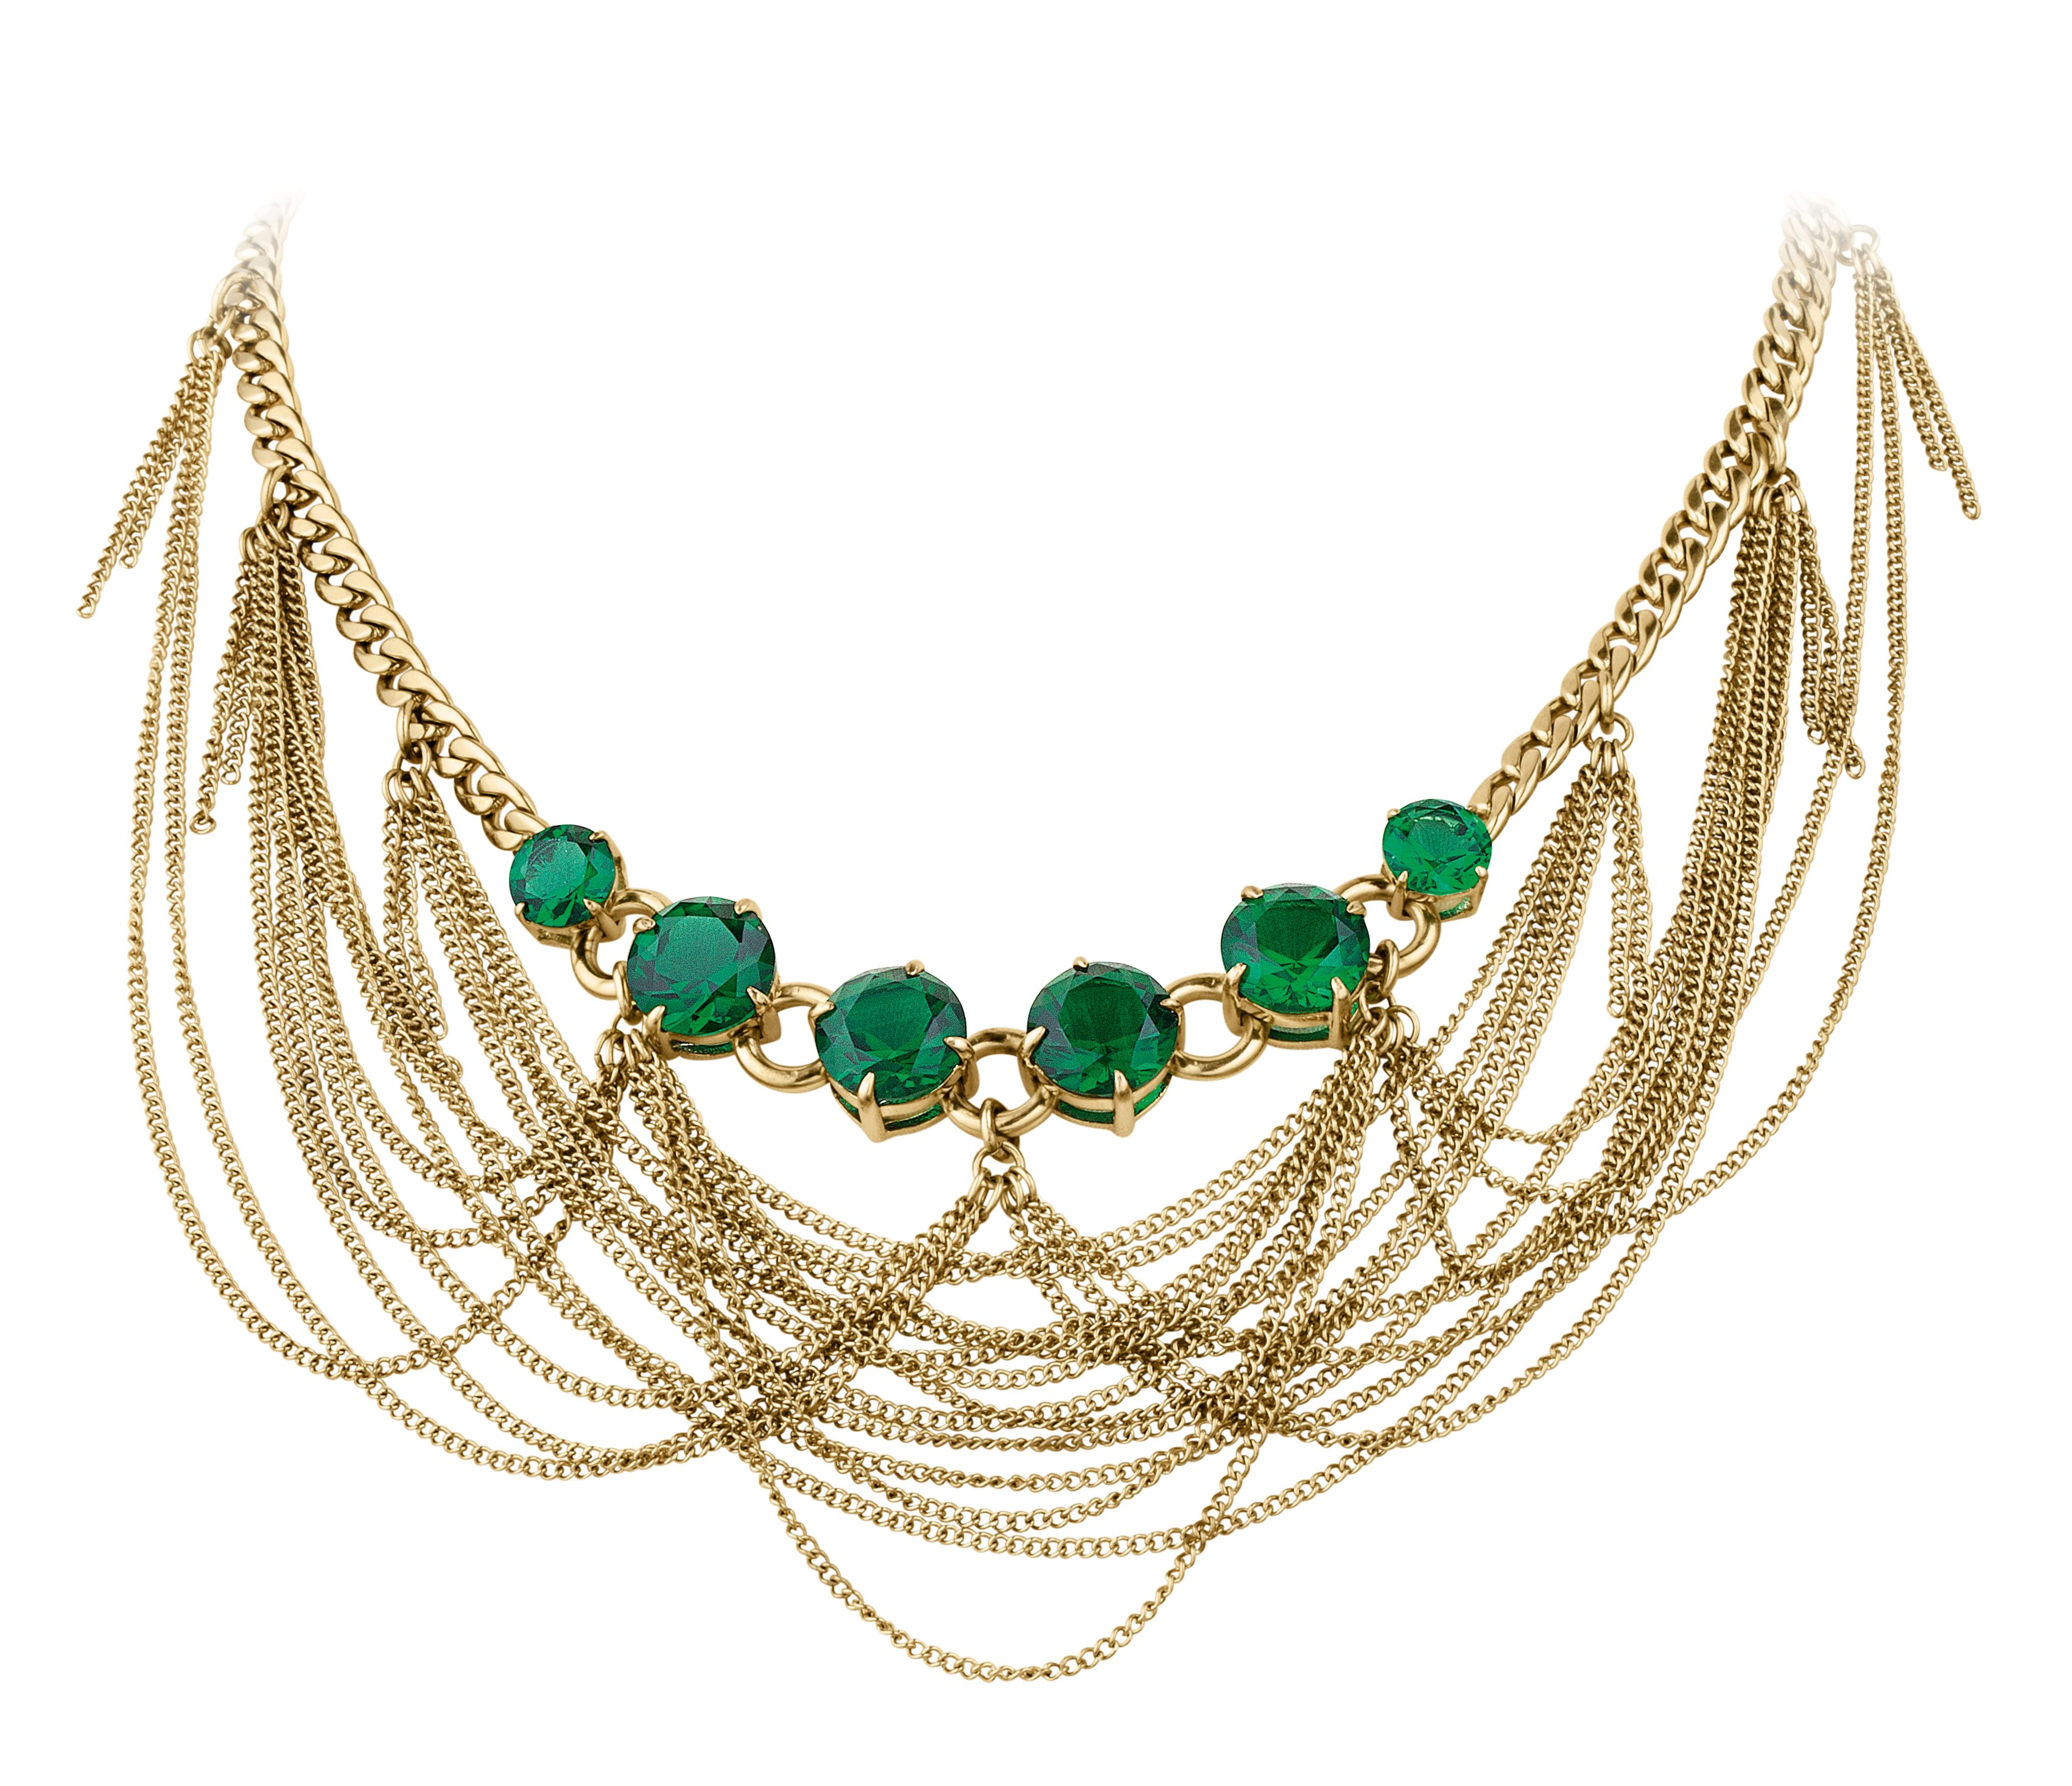 Kelin shiny gold green necklace